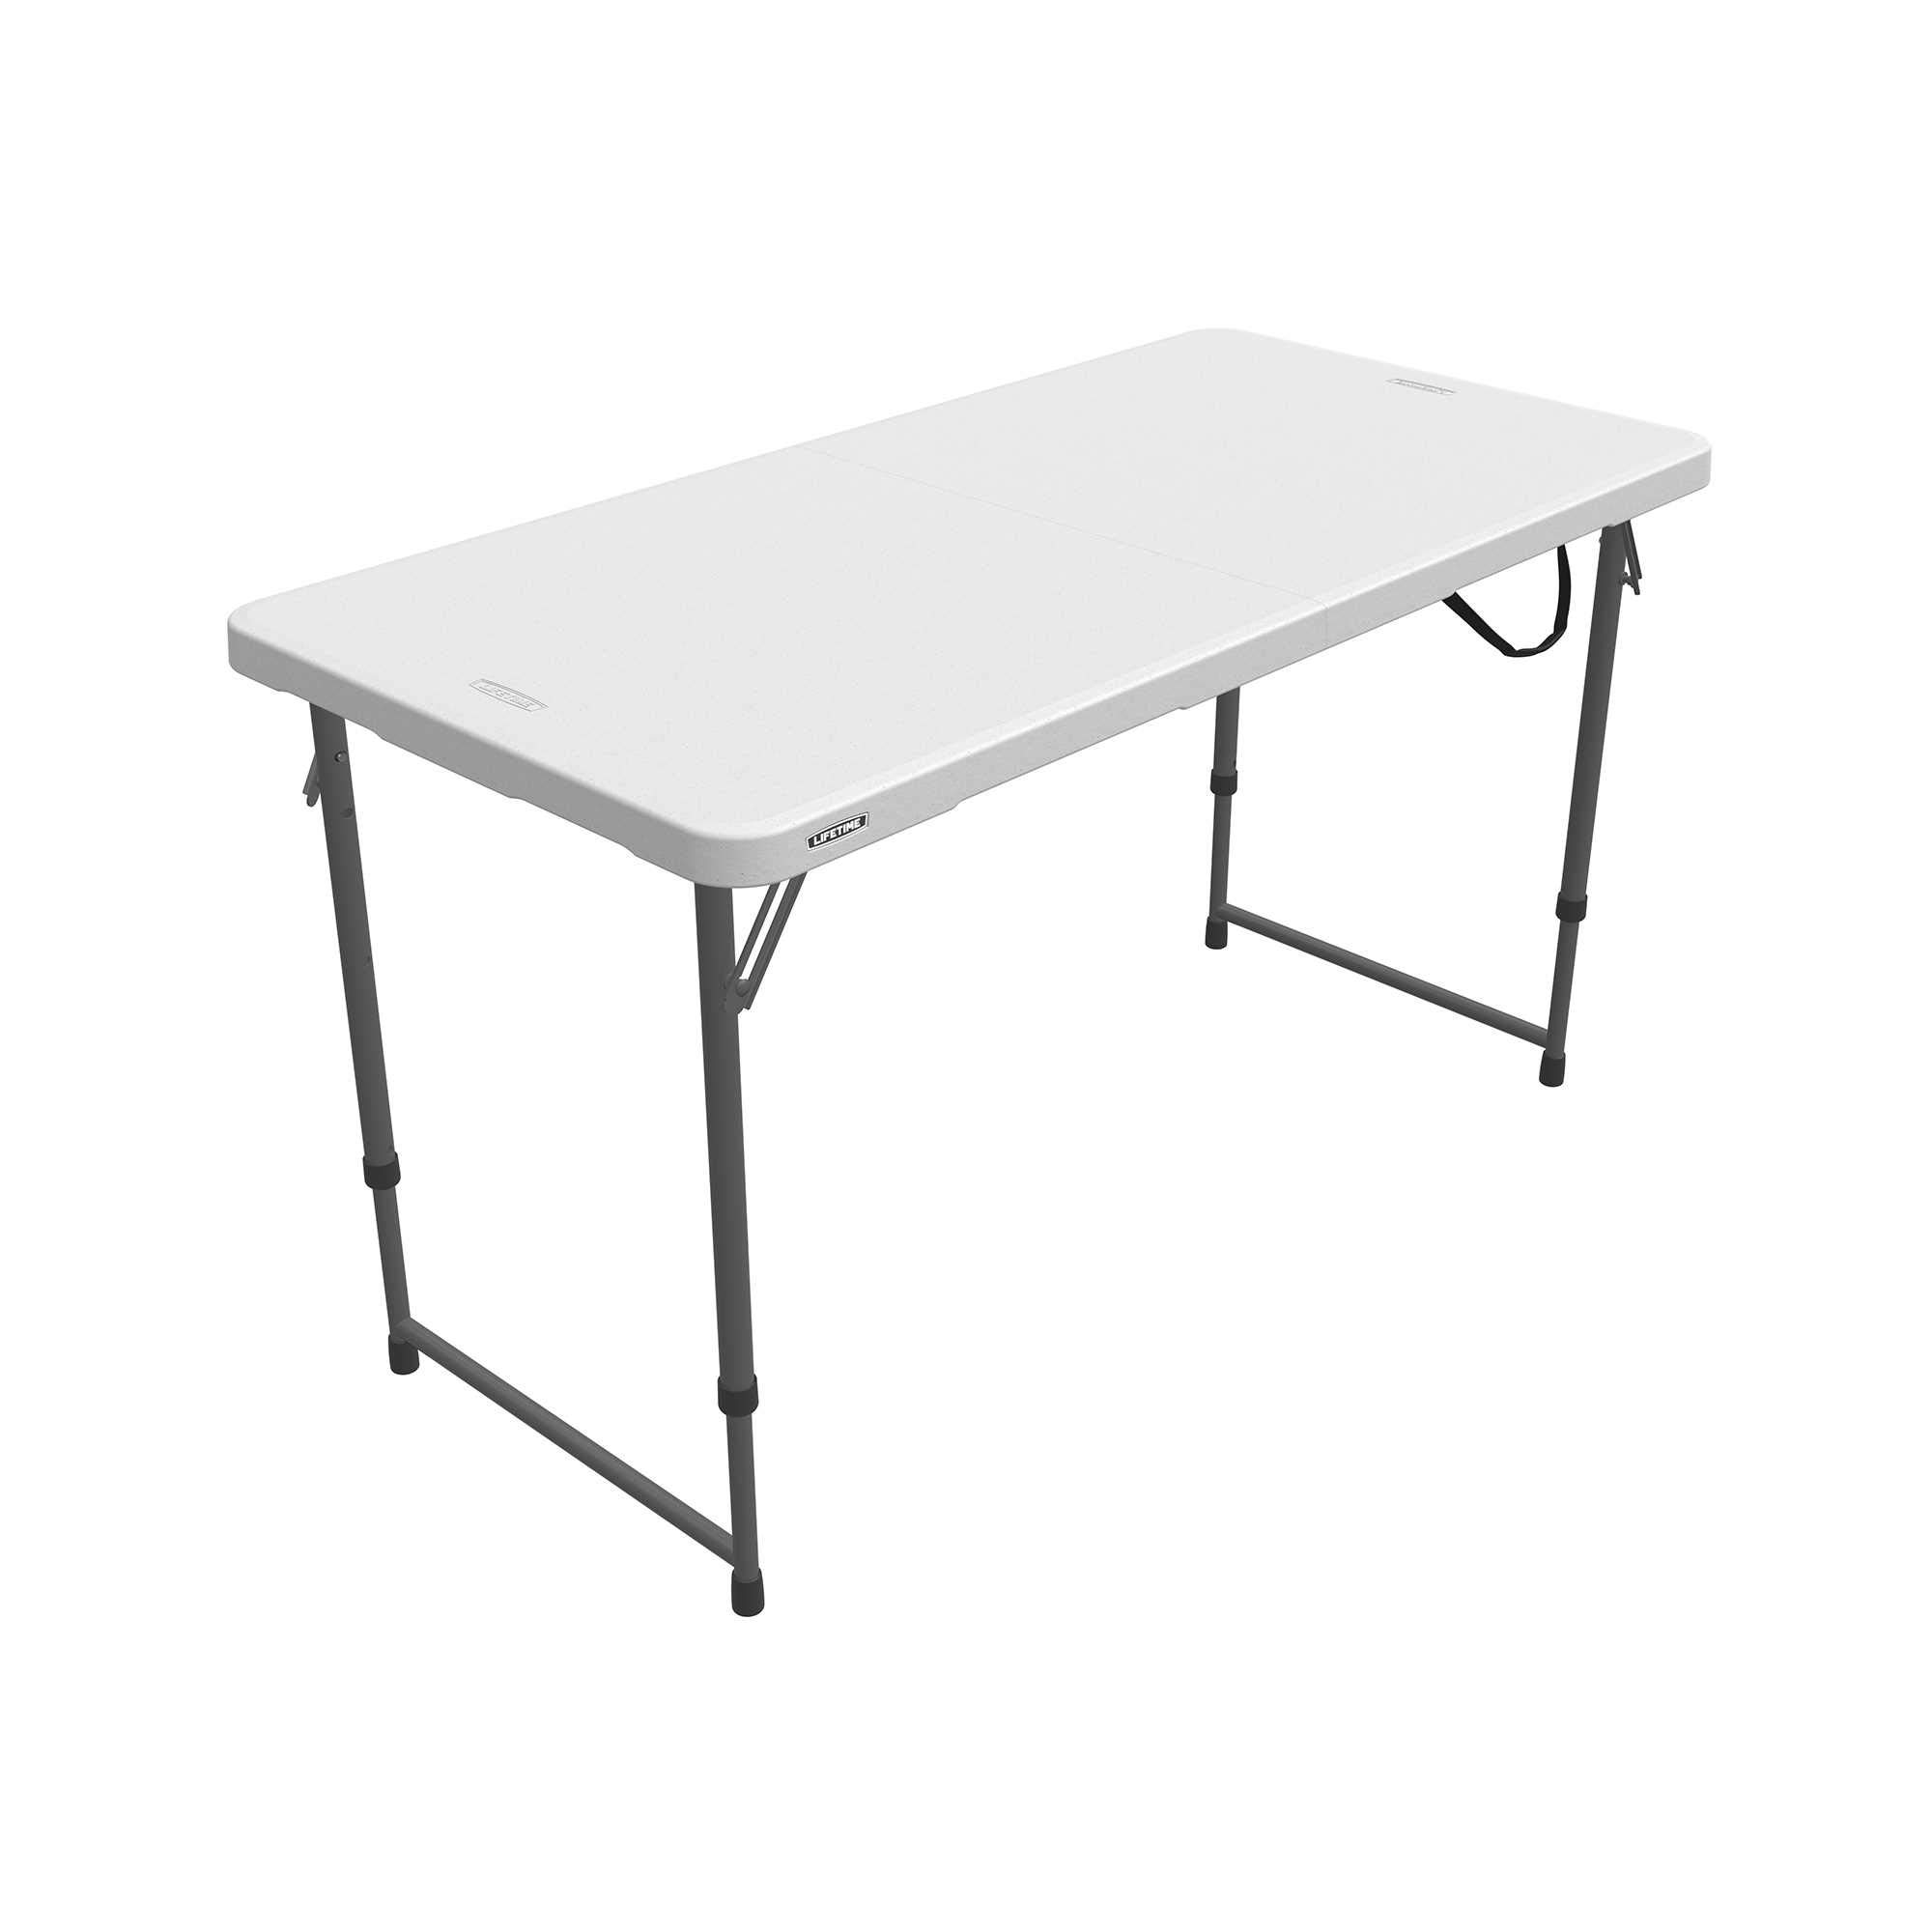 Lifetime 4 x 2 ft (122 x 61 cm) Rectangular Light Commercial Fold-in-Half Folding Table with 3 Adjustable Heights of 22/29/36 in (56/74/91 cm)